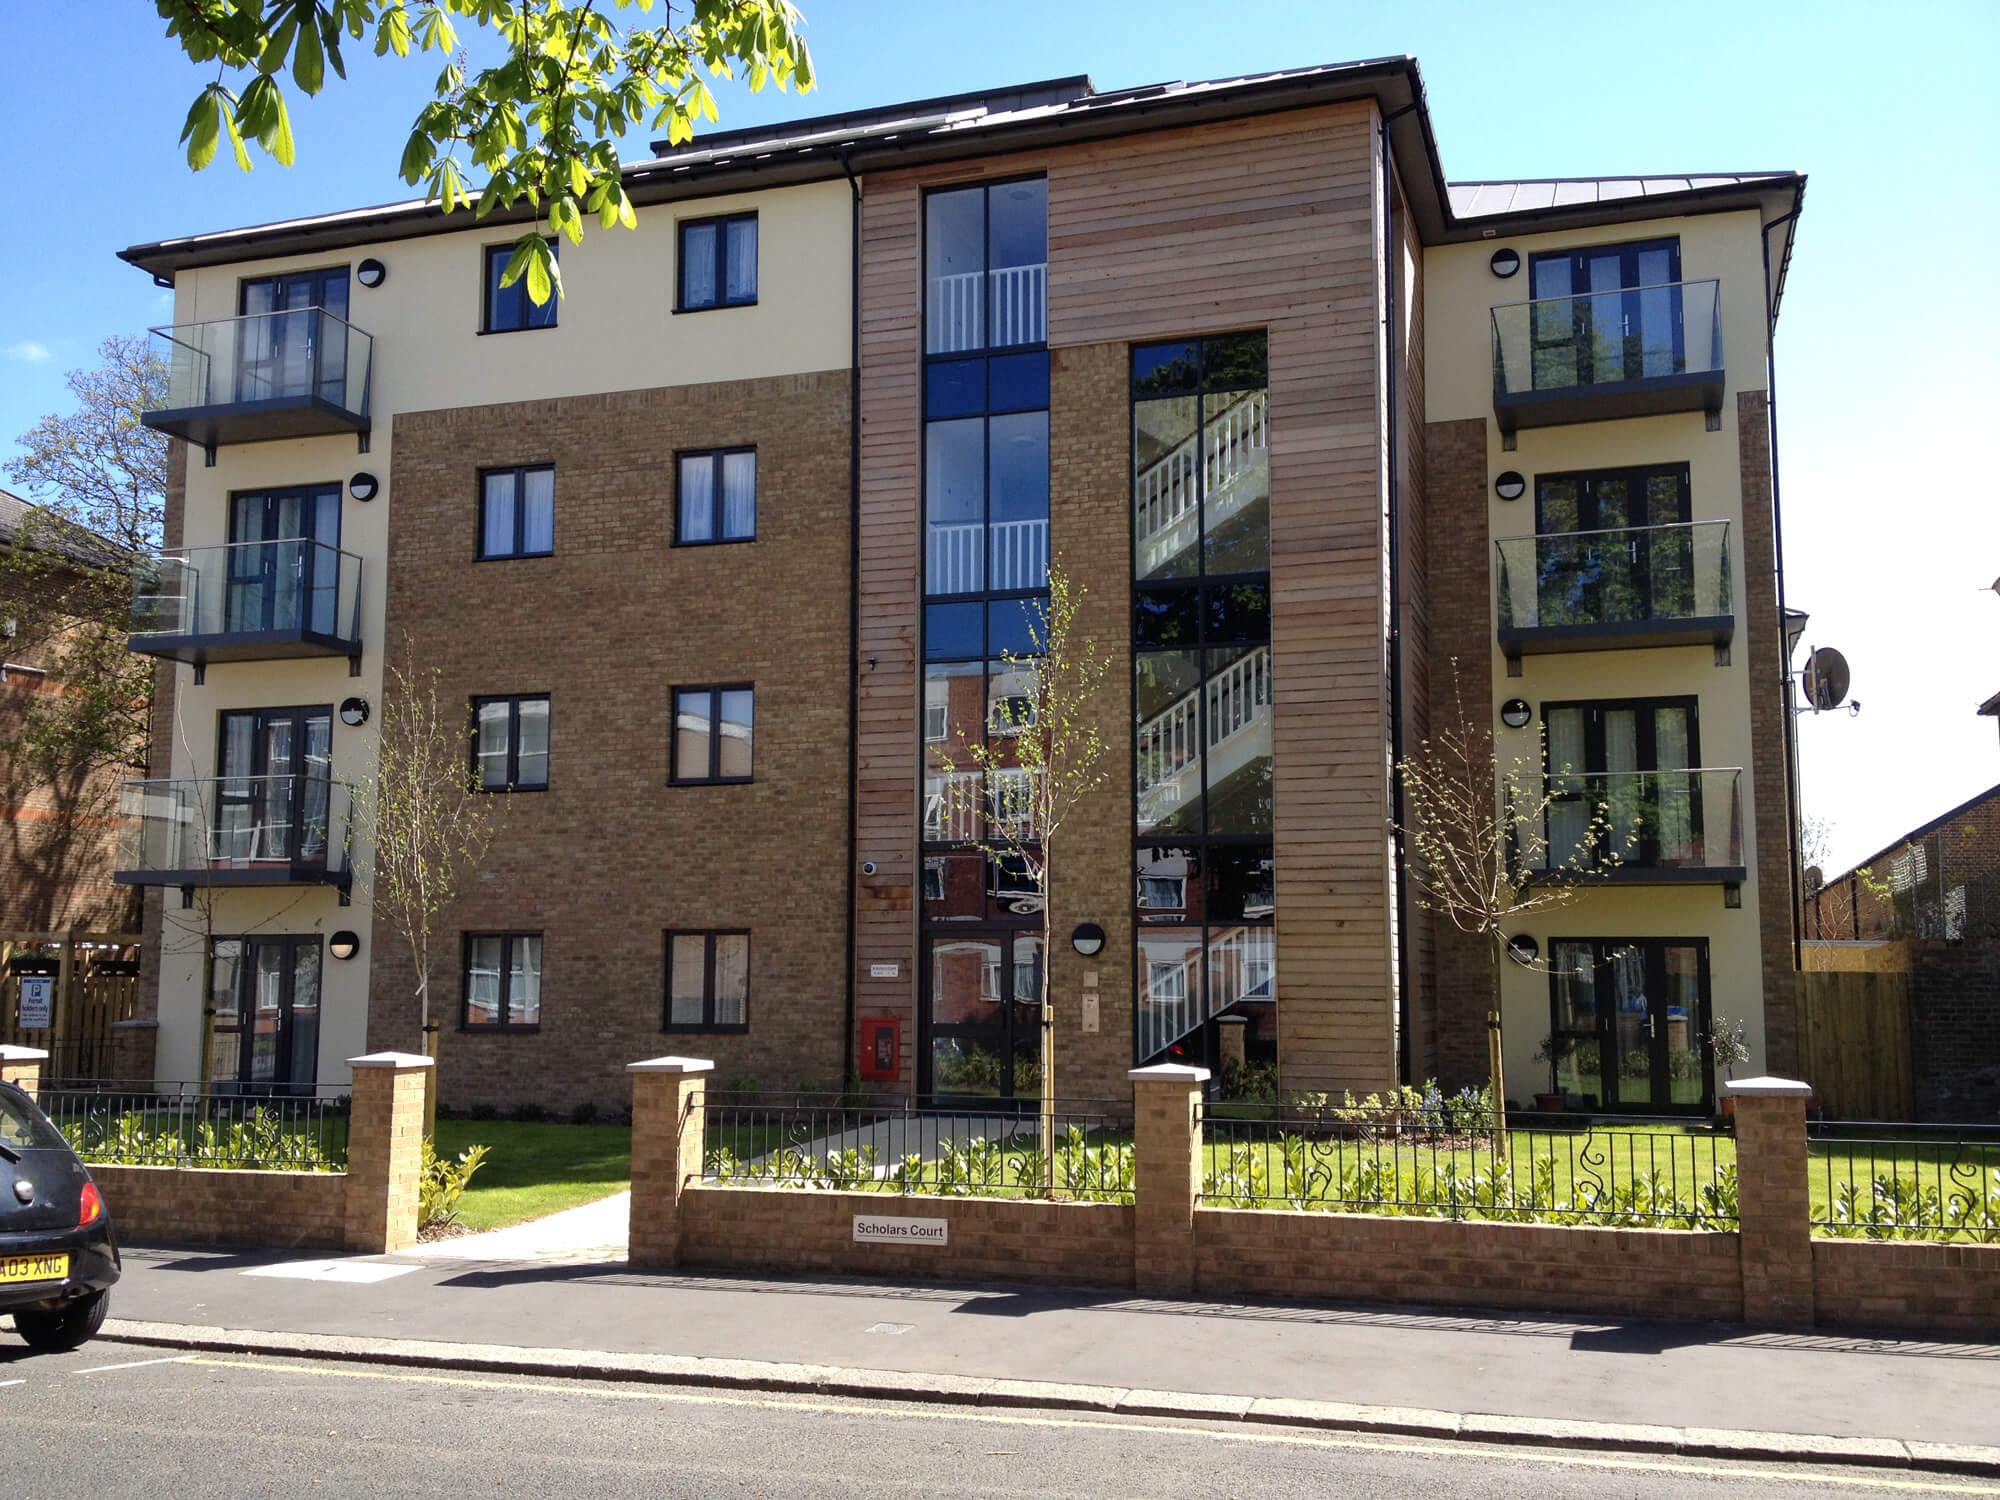 Timber Frame Apartments Croydon With Ideal Lift System 2 Lifts